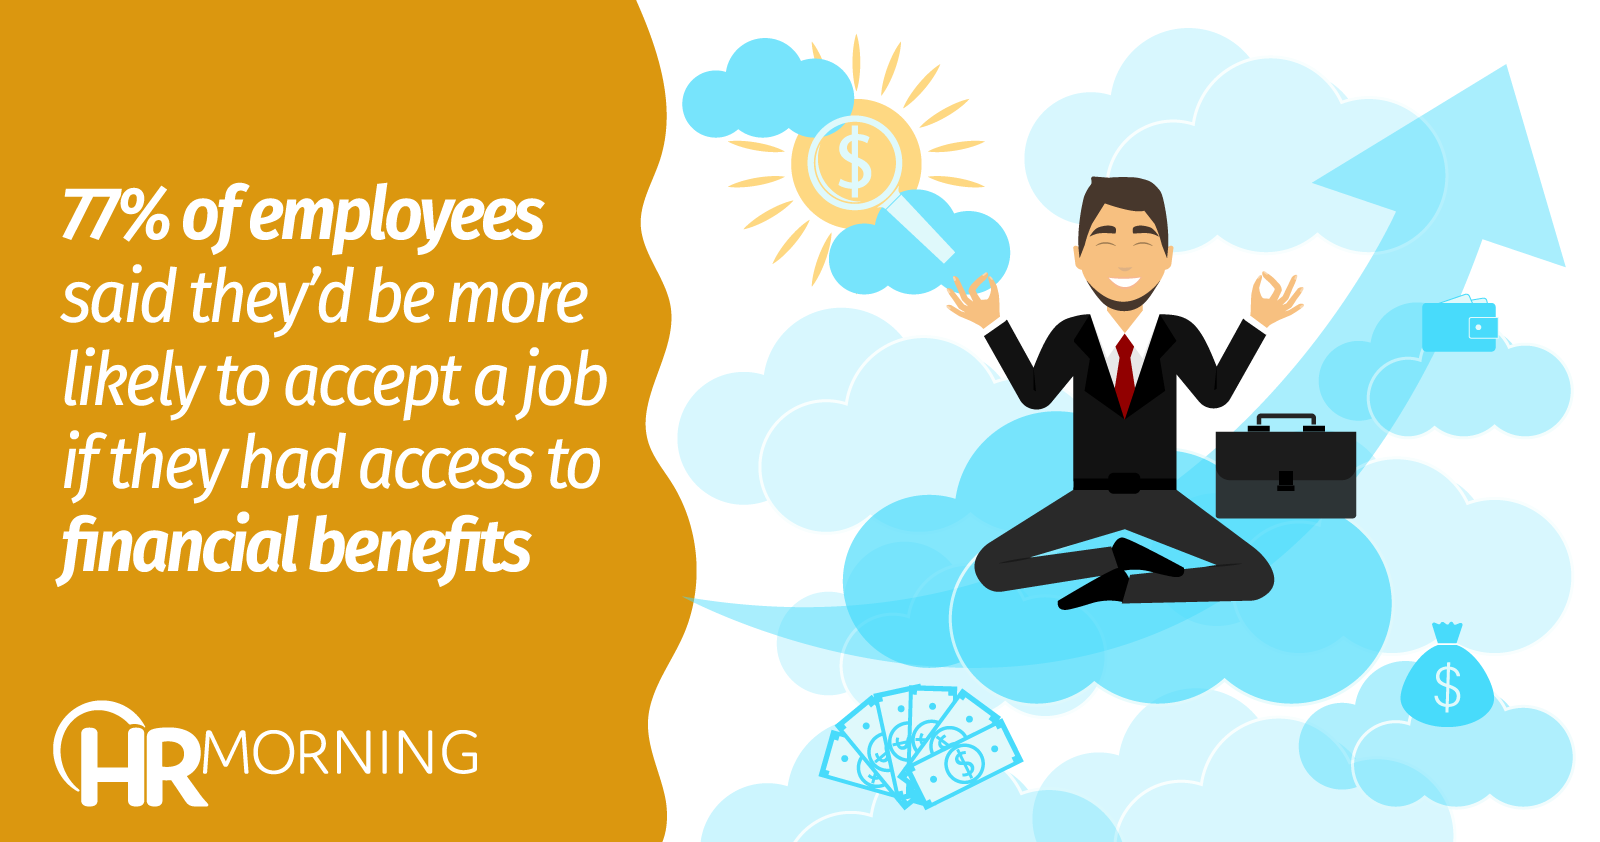 77 percent of employees said they would be more likely to accept a job if they had access to financial benefits